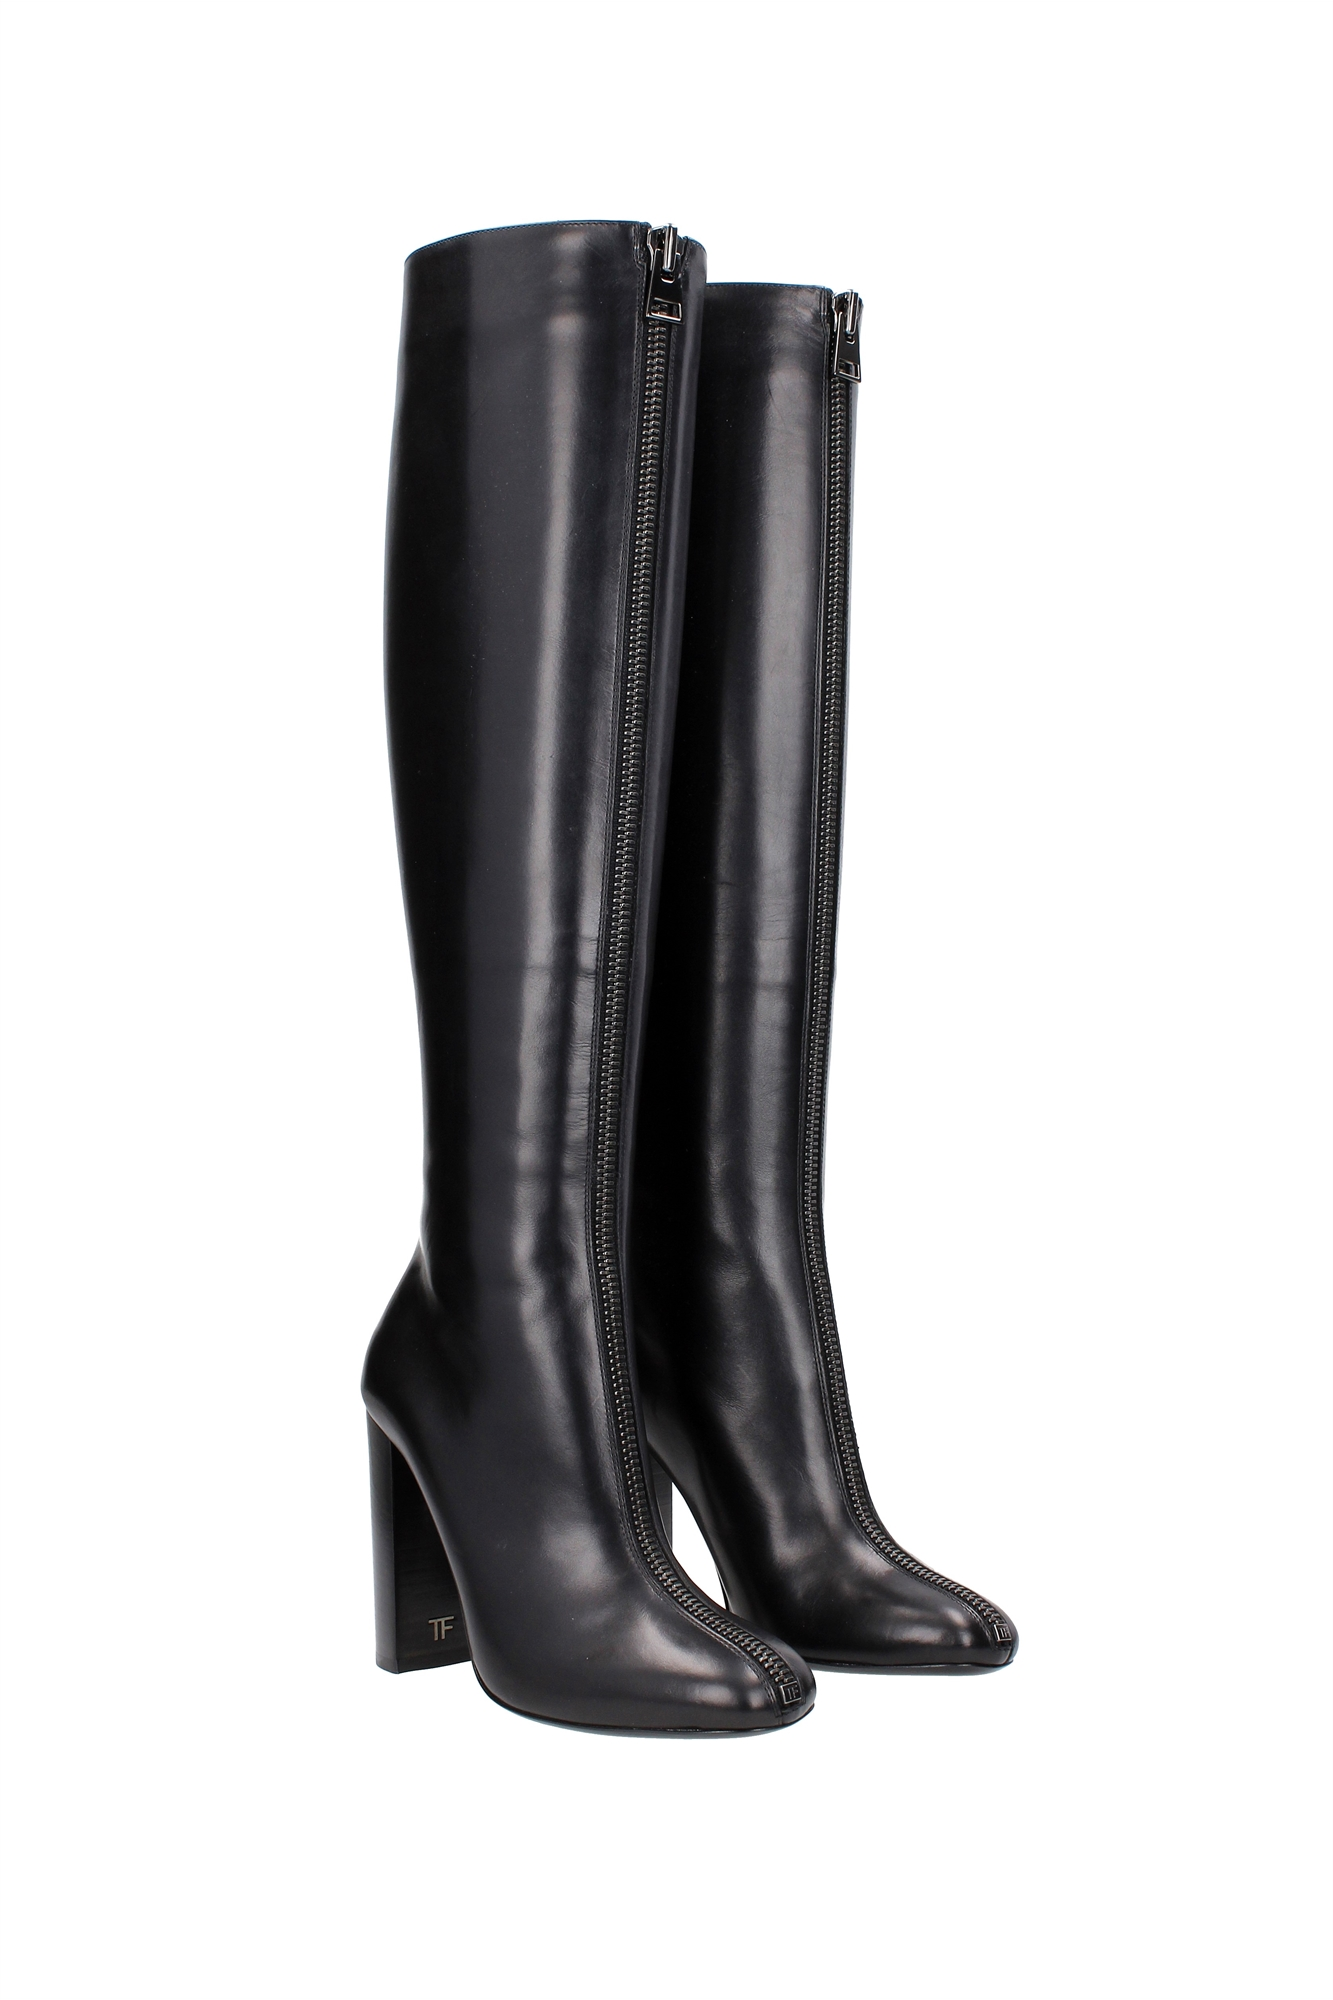 boots tom ford leather black 215w1507tscablk ebay